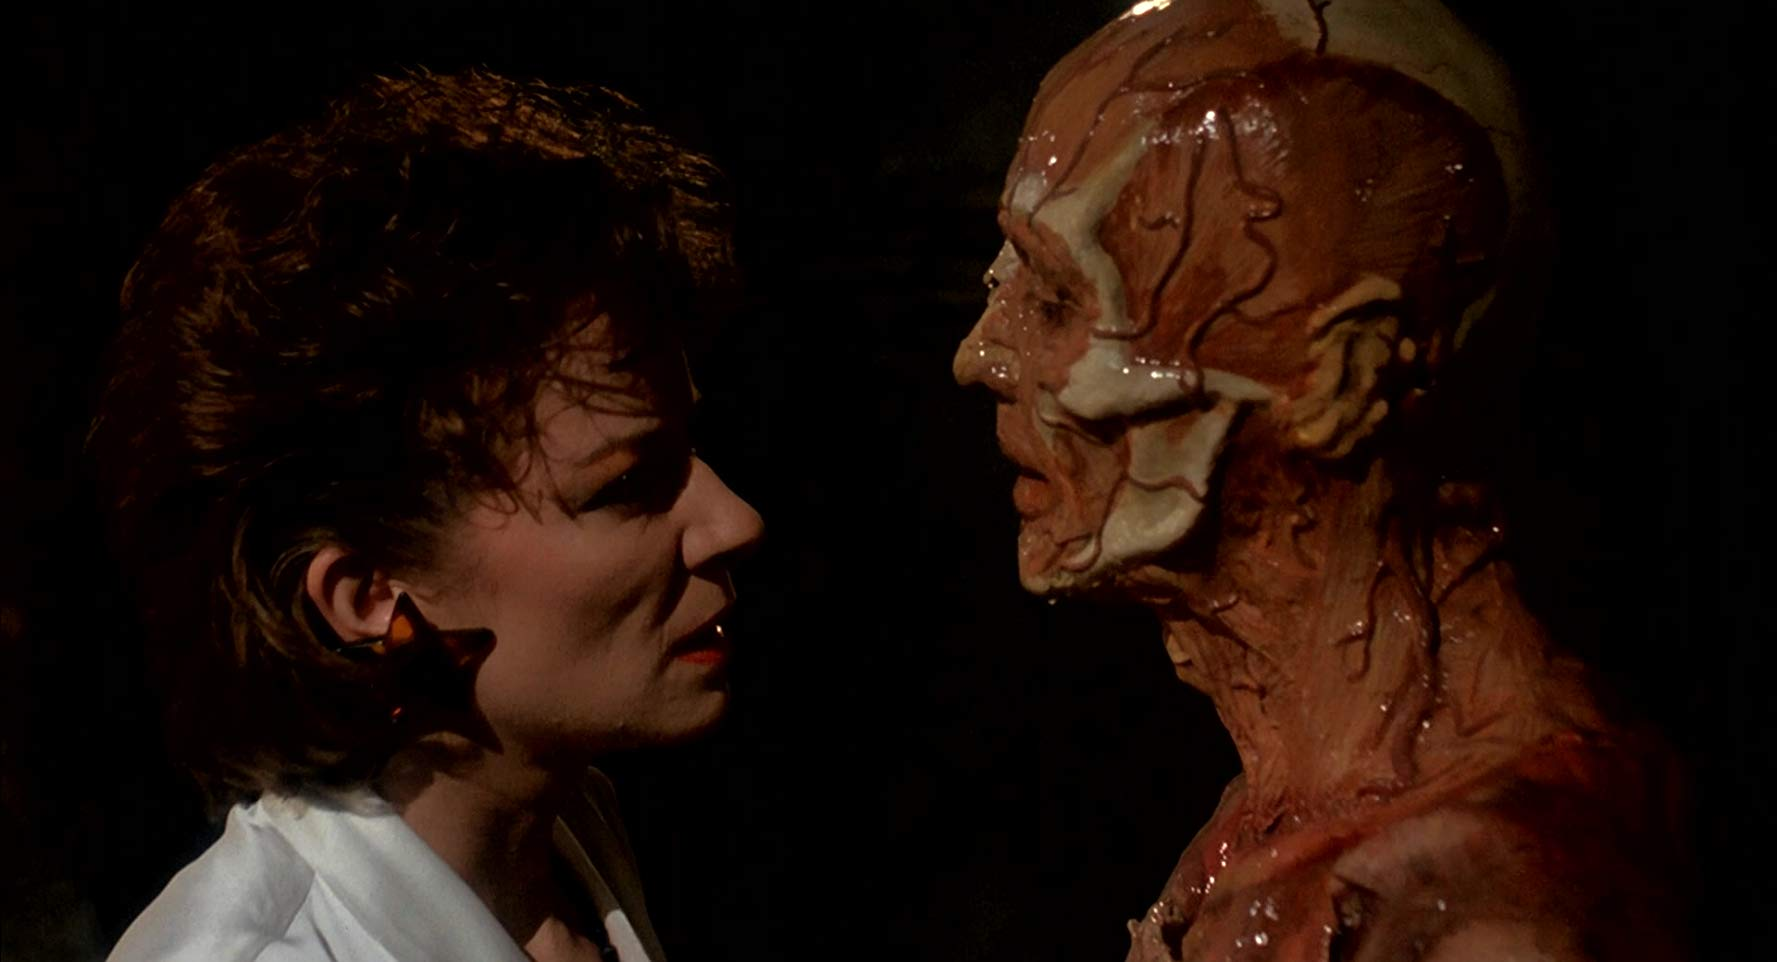 Clare Higgins and the skinless Frank (Oliver Smith) in Hellraiser (1987)